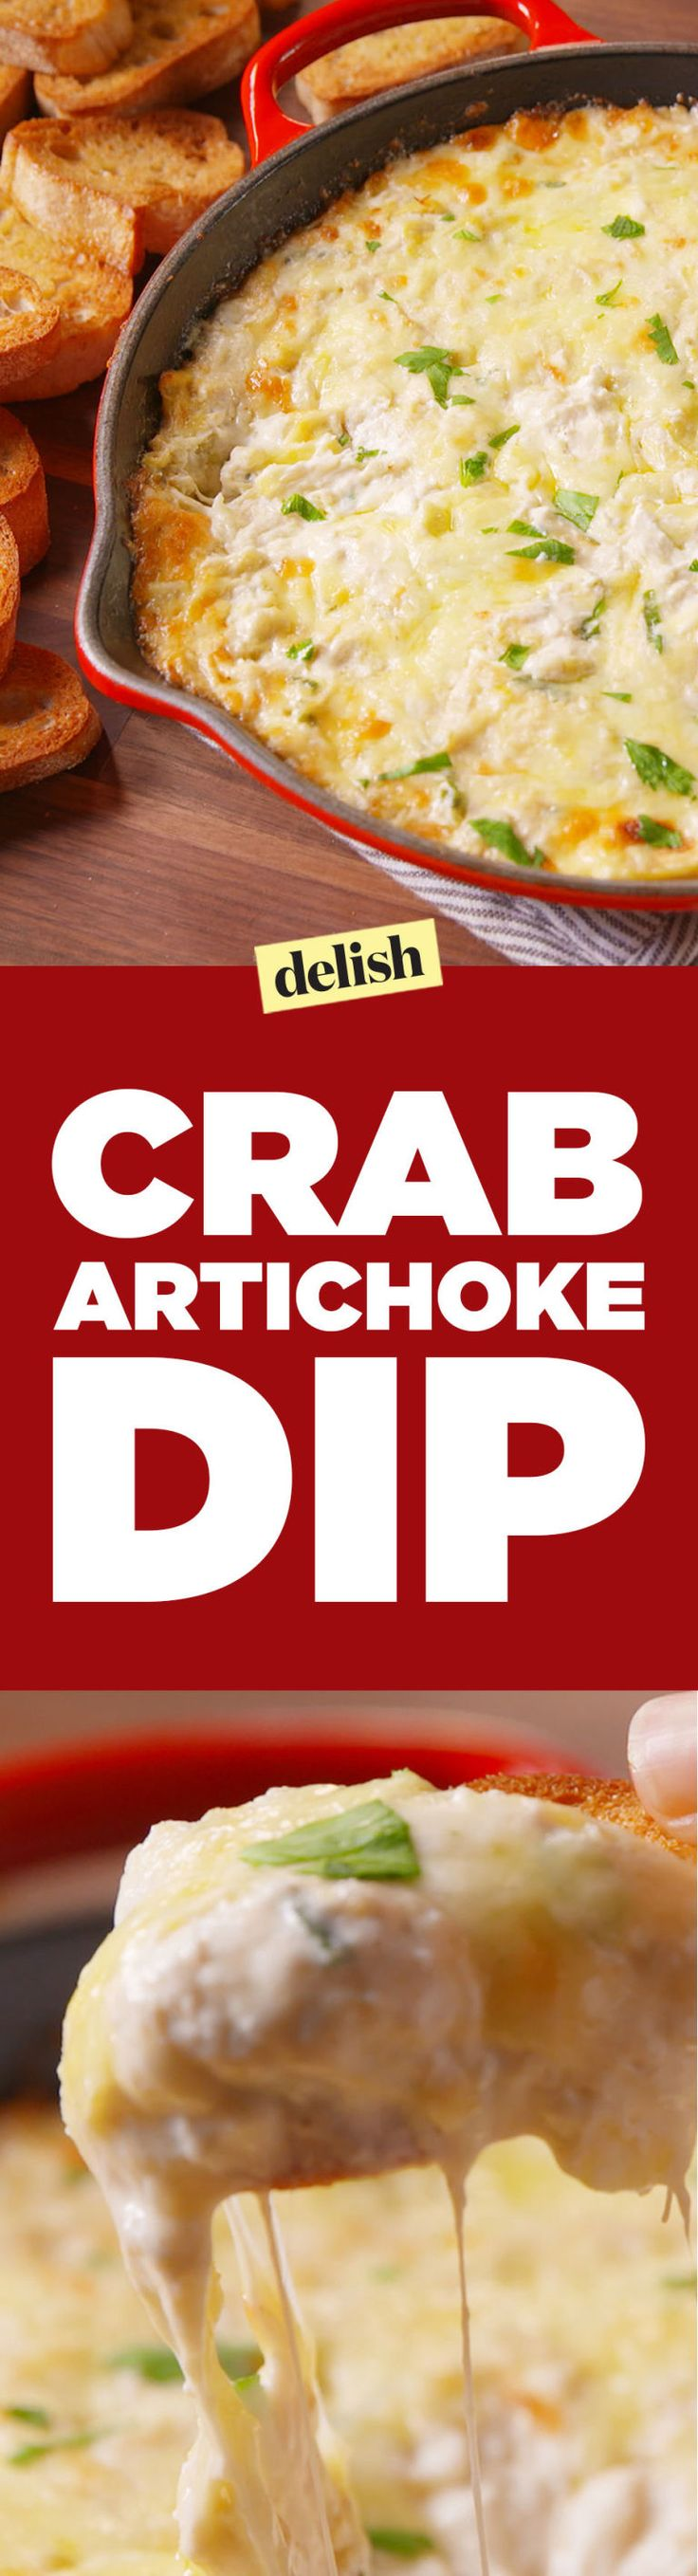 This Cheesy Crab Artichoke Dip Is The Most Splurge-Worthy Game Day Snack  - Delish.com